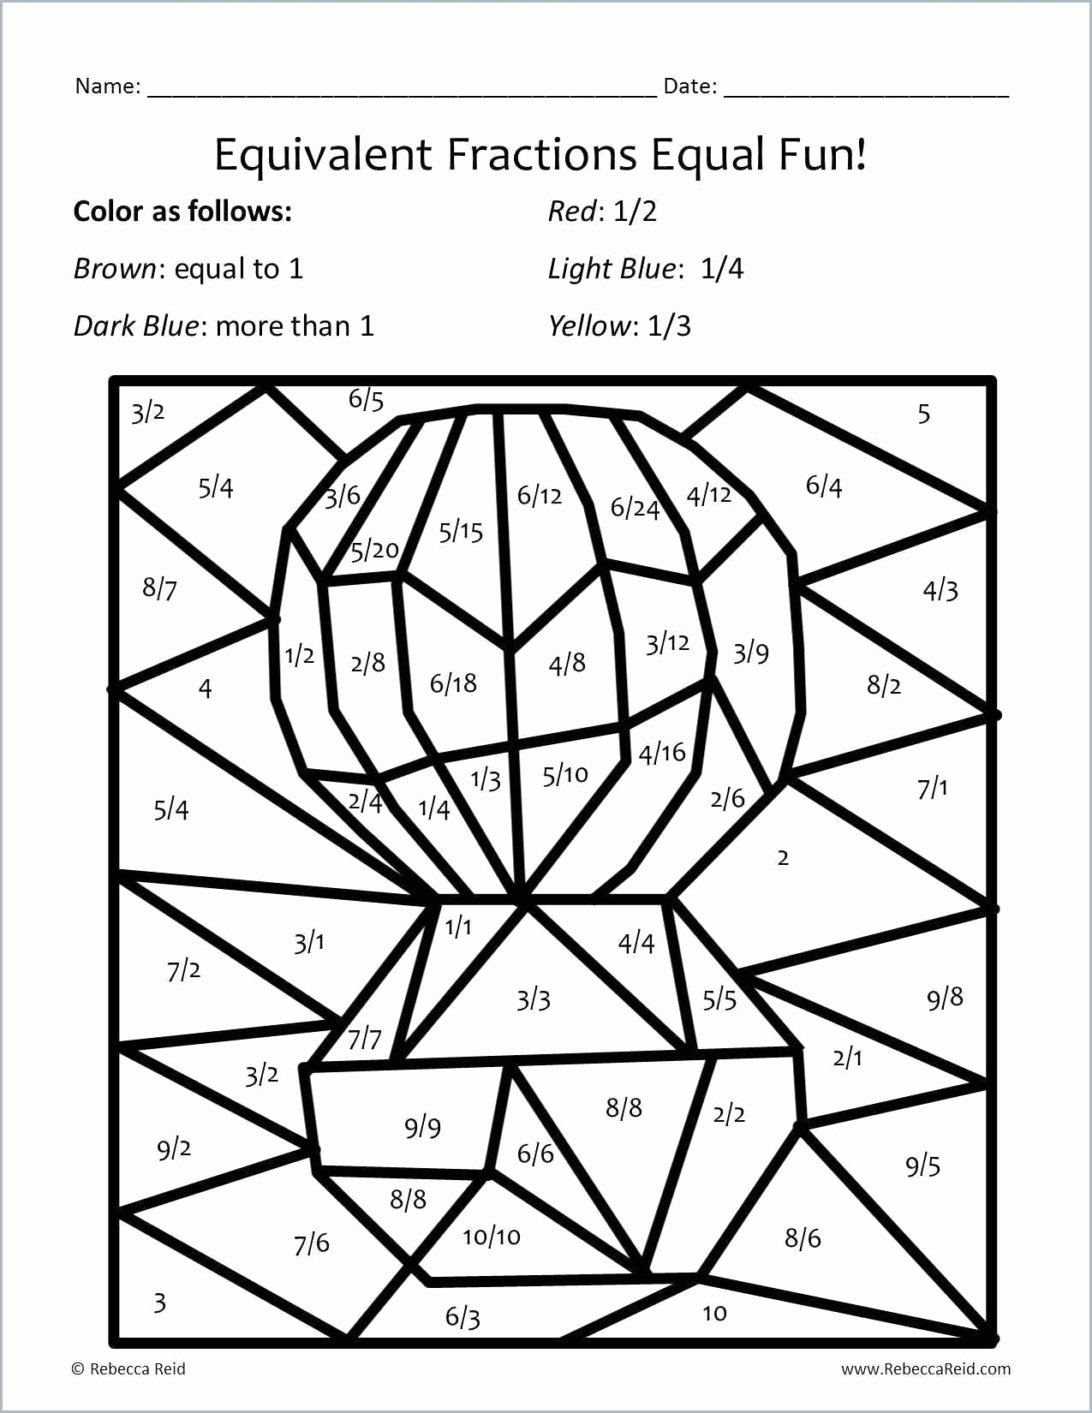 Coloring Pages for 3rd Graders Inspirational Reading Coloring Pages 3rd Grade Sheet Book Activity someday